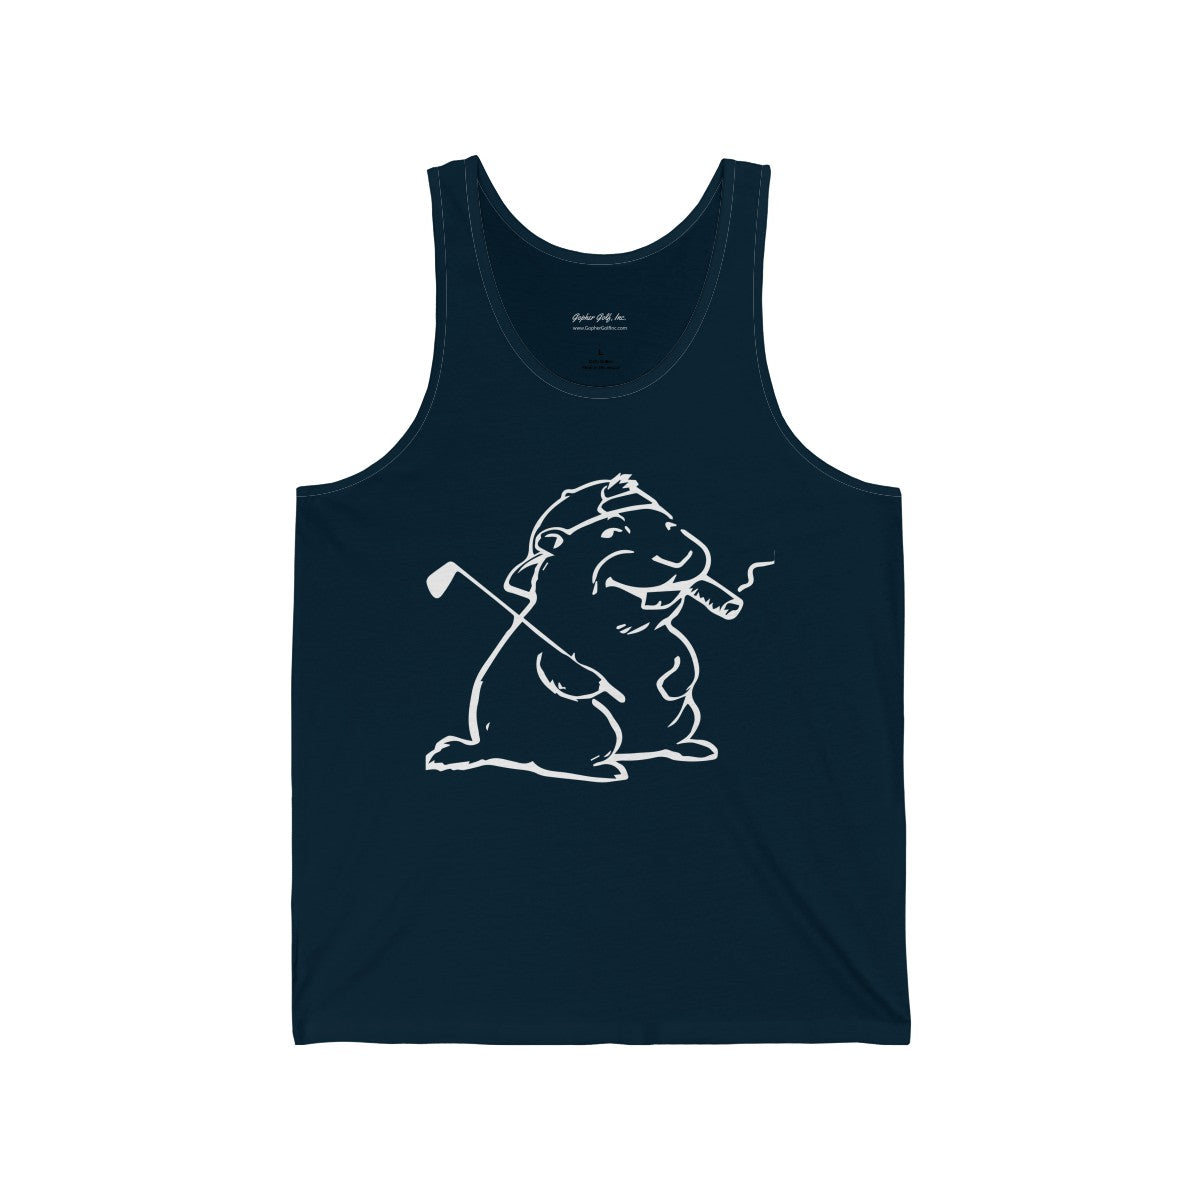 Gopher Golf - Unisex Jersey Tank - Gopher Golf